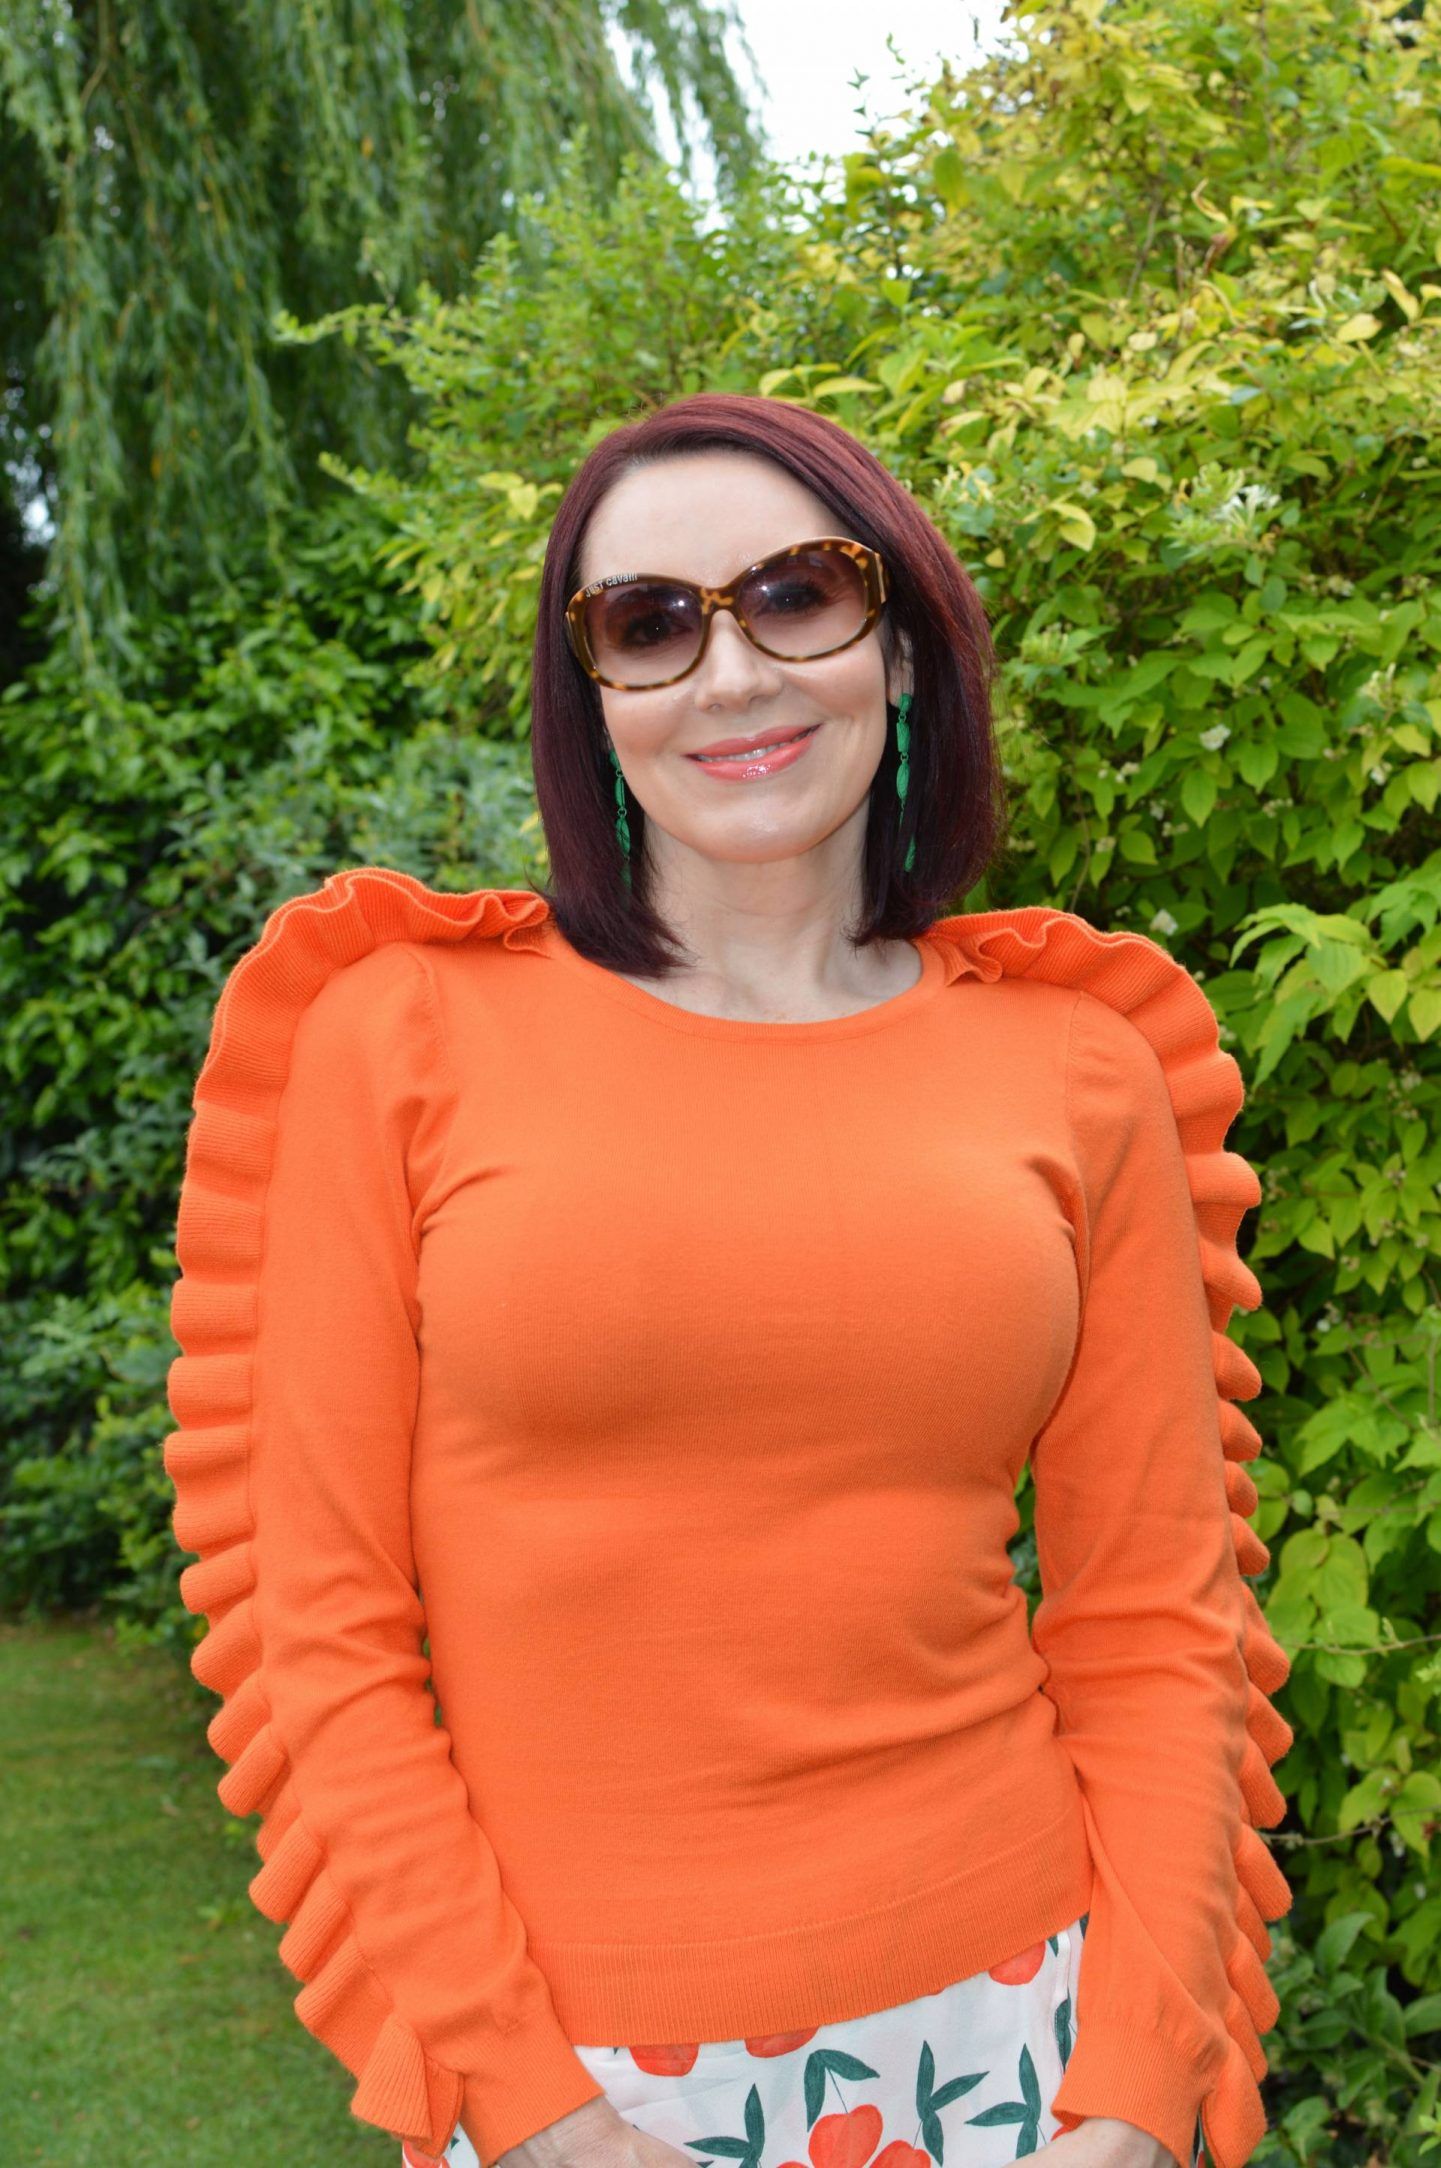 Karen Millen orange ruffle jumper